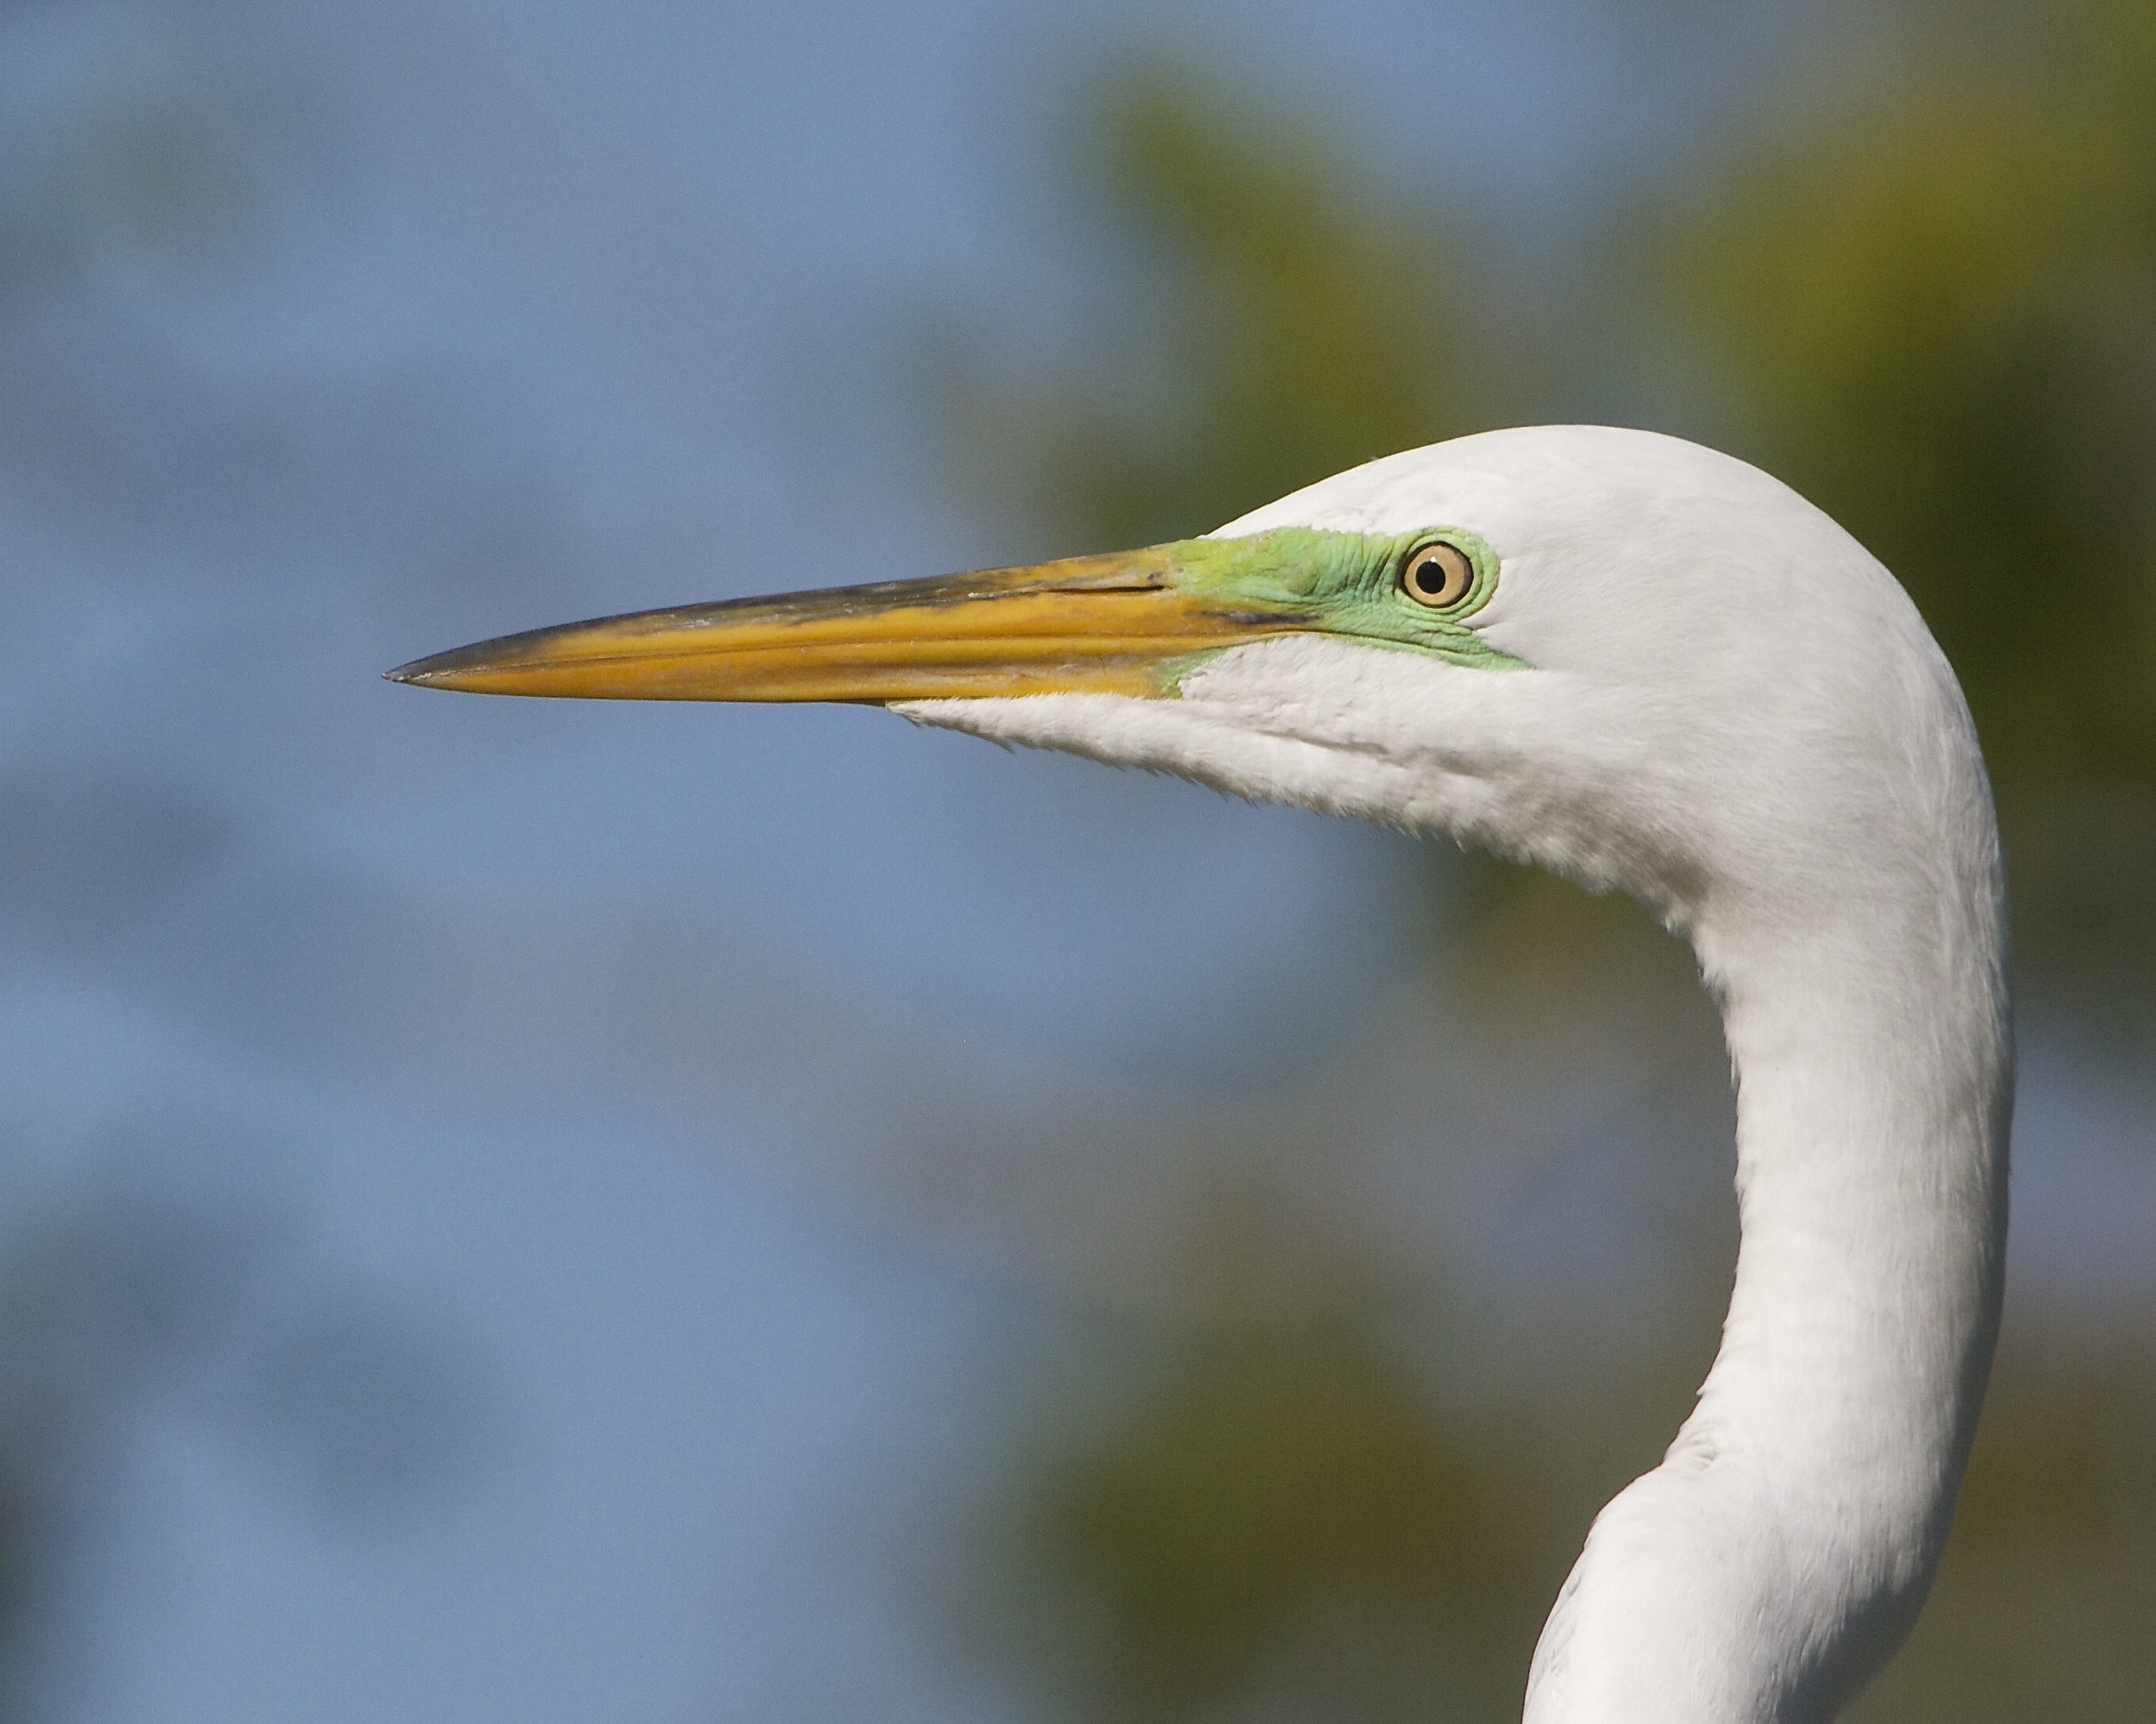 Great Egret eyes show the green mating colors